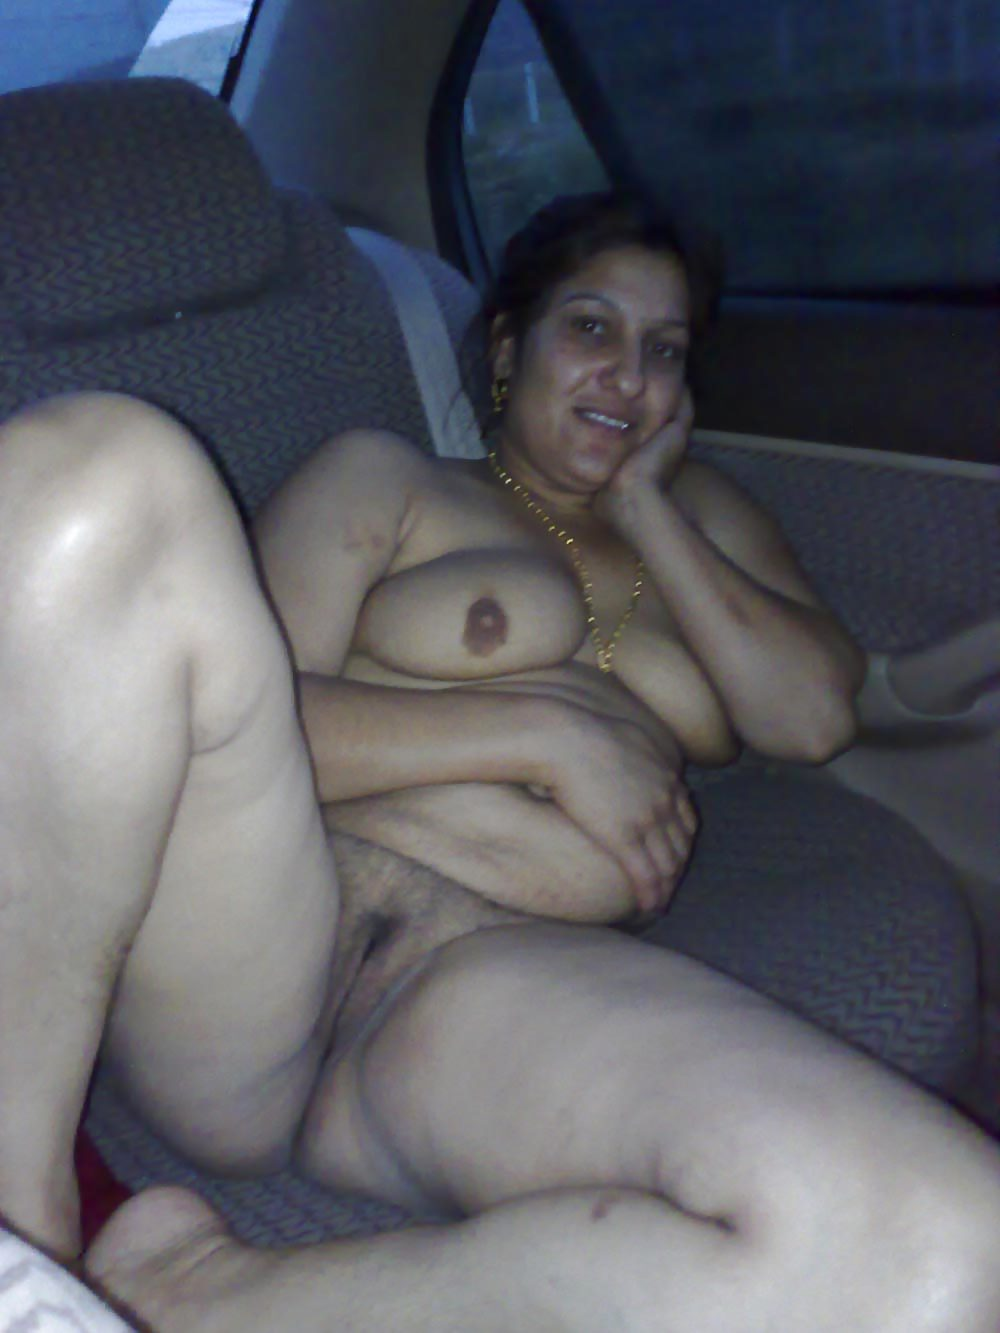 Congratulate, Mature aunty pussy and nude wallpaper with